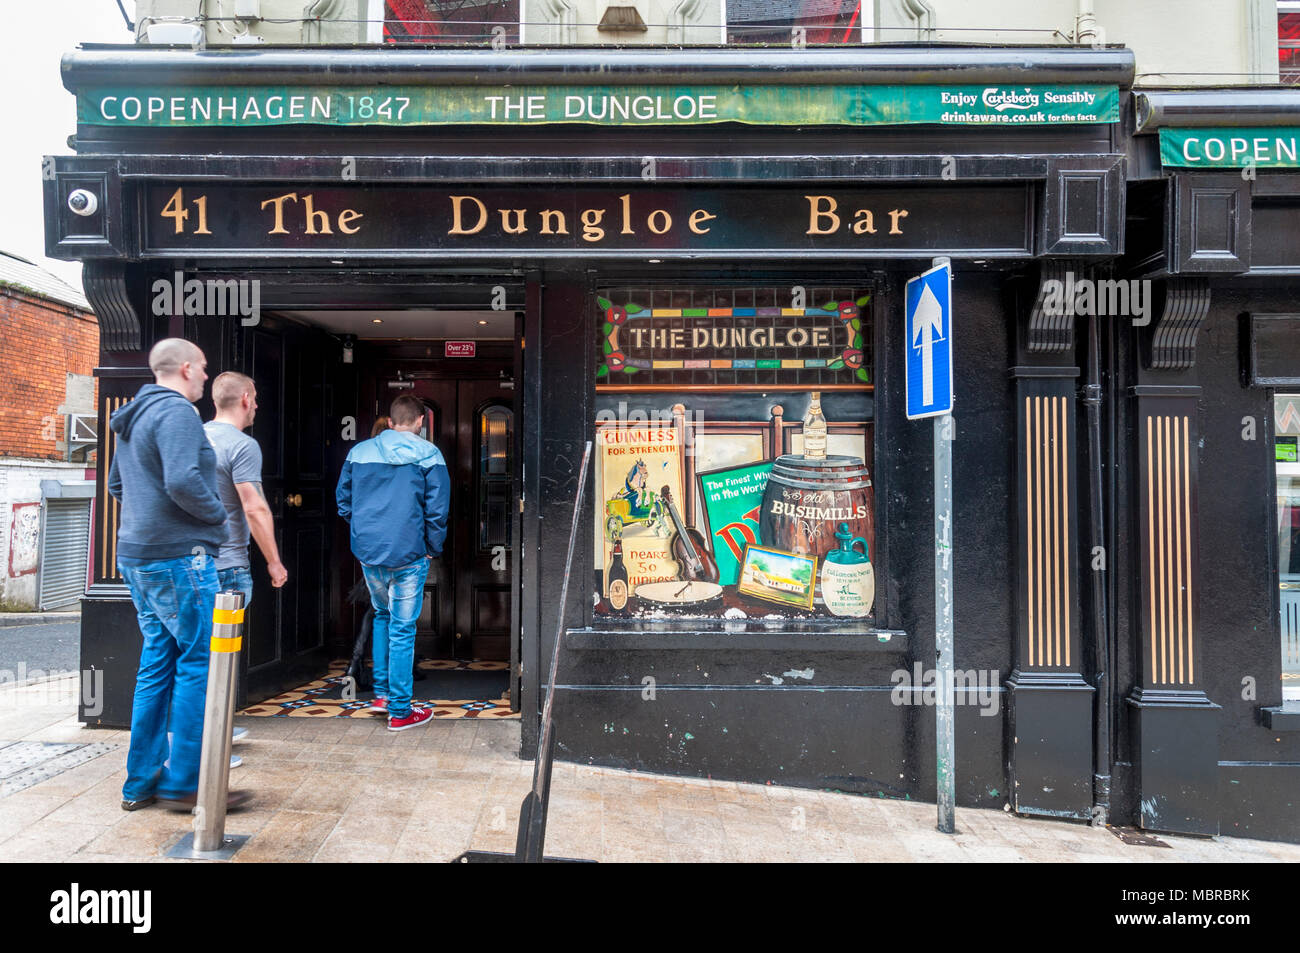 The Dungloe Bar, Derry City, Londonderry, Northern Ireland, UK - Stock Image